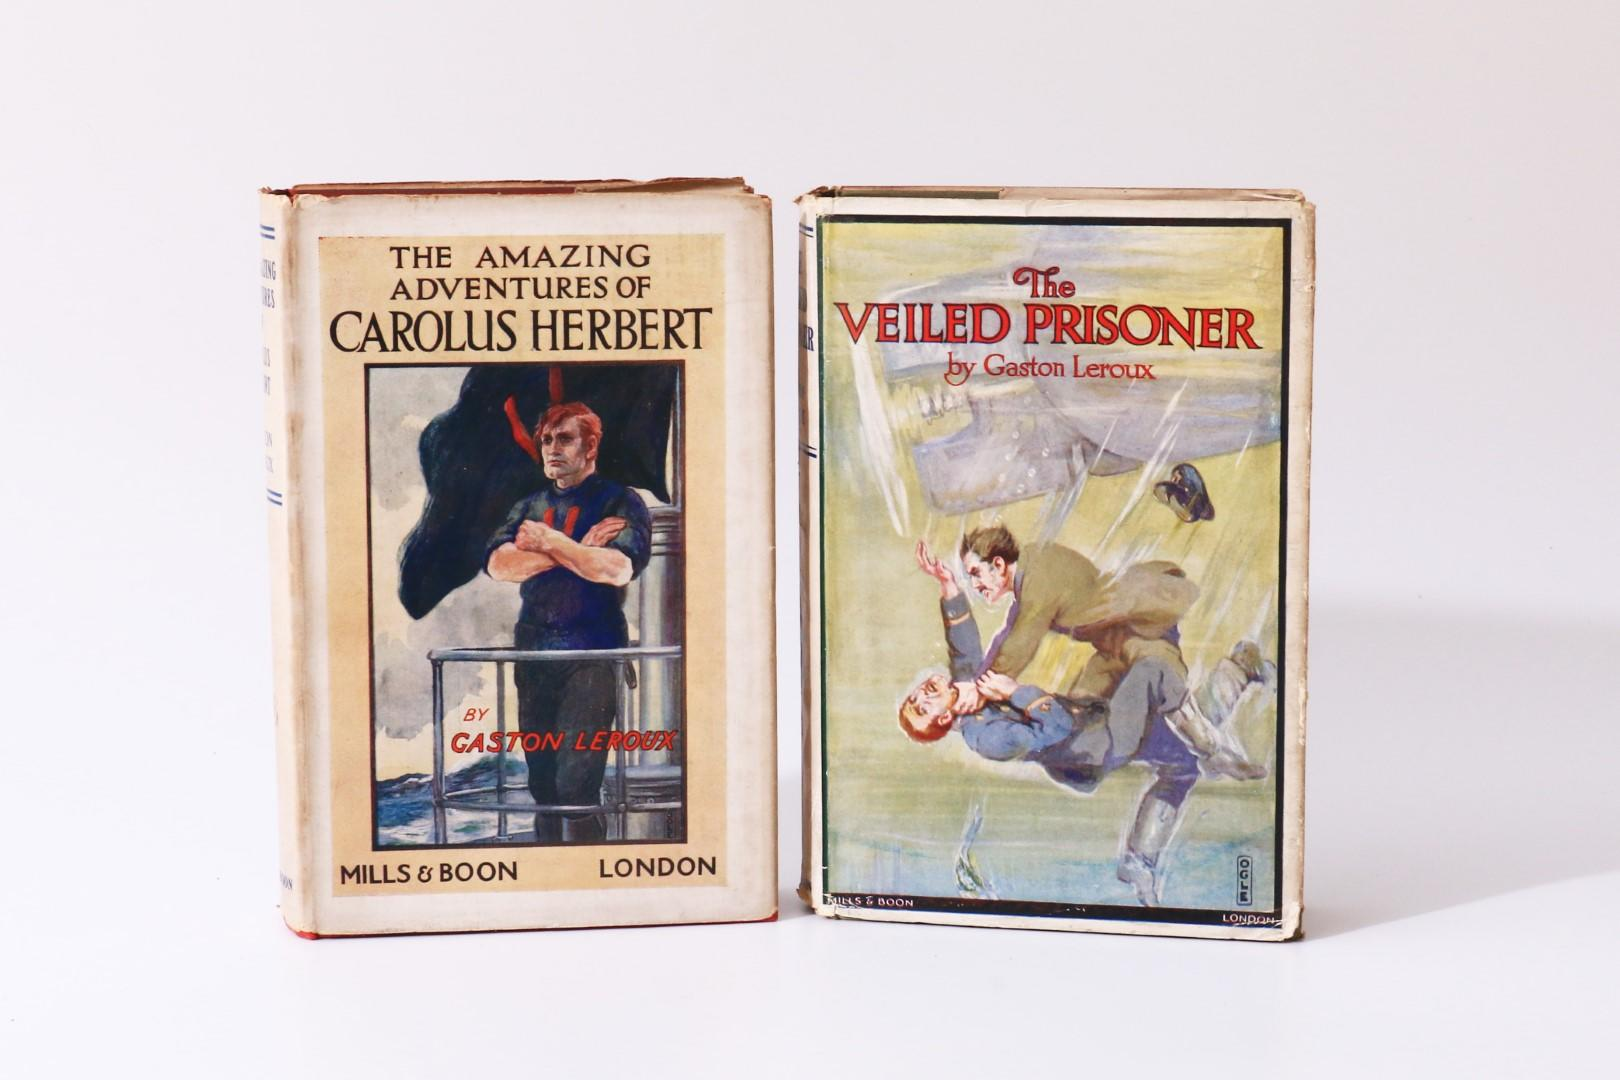 Gaston Leroux - The Amazing Adventures of Carolus Herbert w/ The Veiled Prisoner - Mills & Boon, 1922-1923, First Edition.